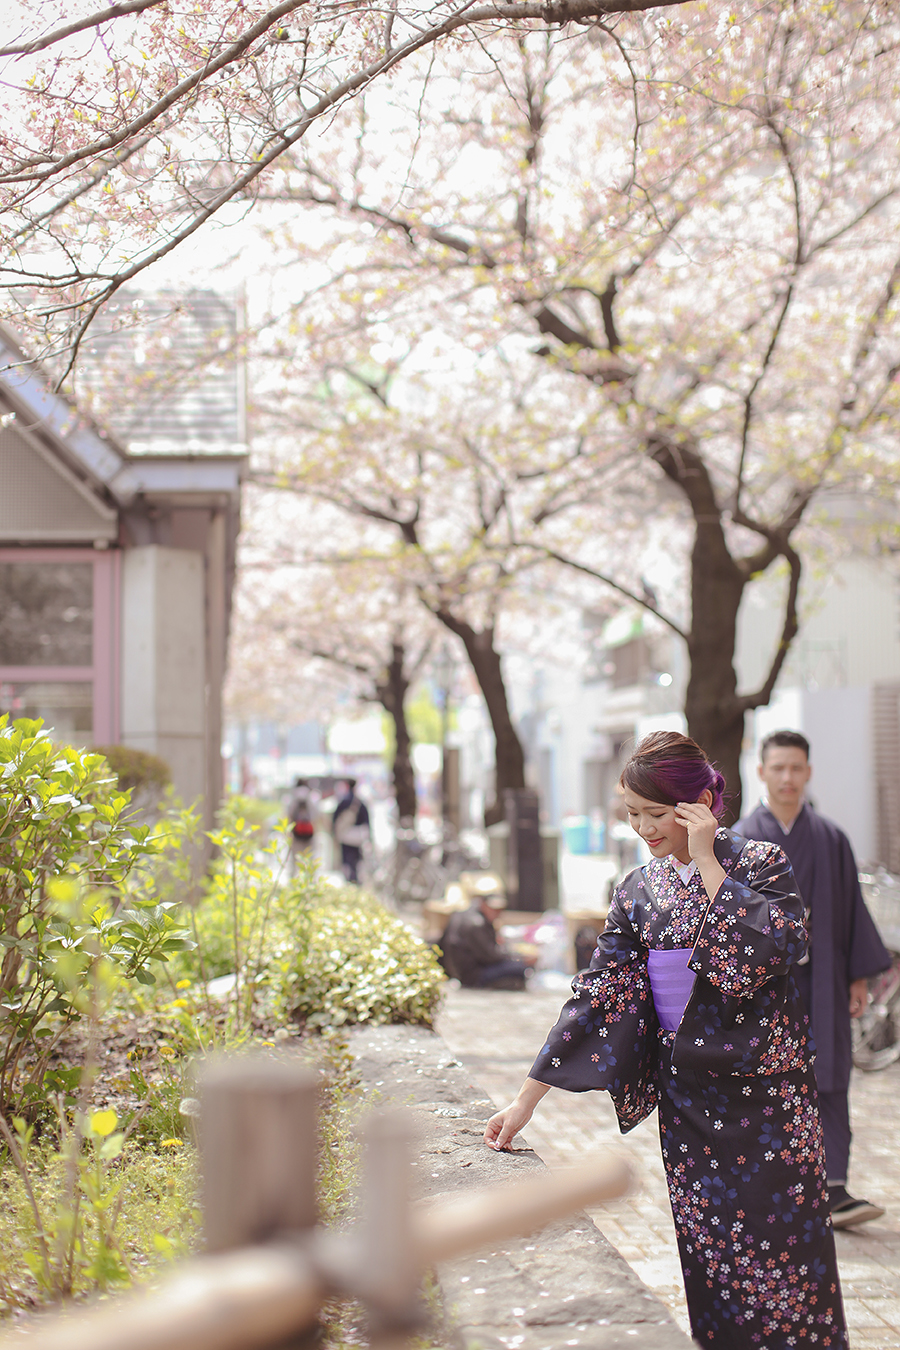 tokyo hakone japan spring sakura . engagement wedding photography by kurt ahs . ns + eu . 0404.jpg